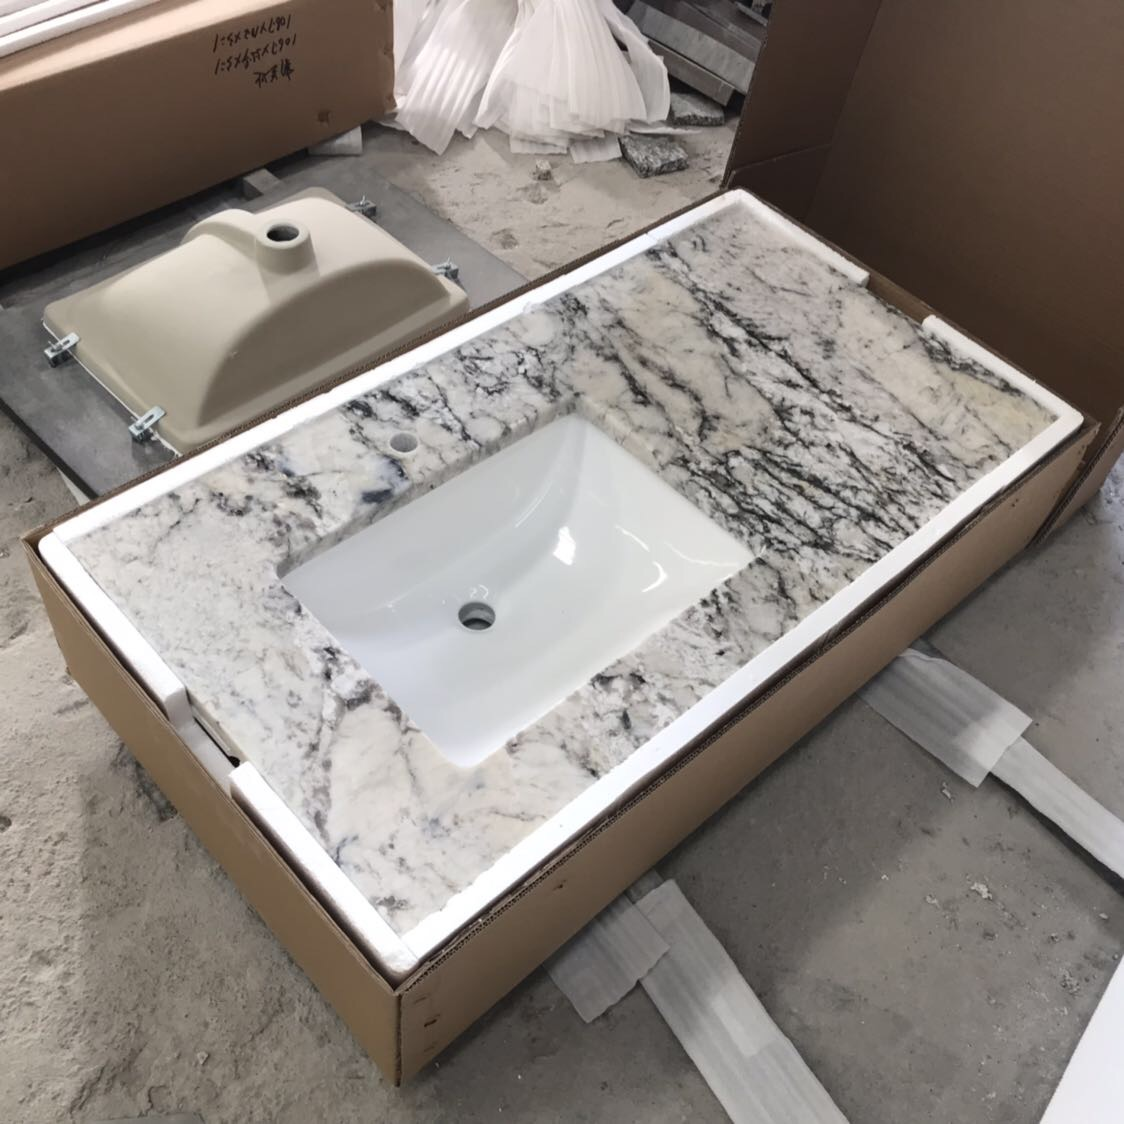 Kitchen dining table,granite bathroom vanity,granite vanity top with sink,49 inch vanity top,granite bathroom vanity tops,discount vanity tops,bathroom top